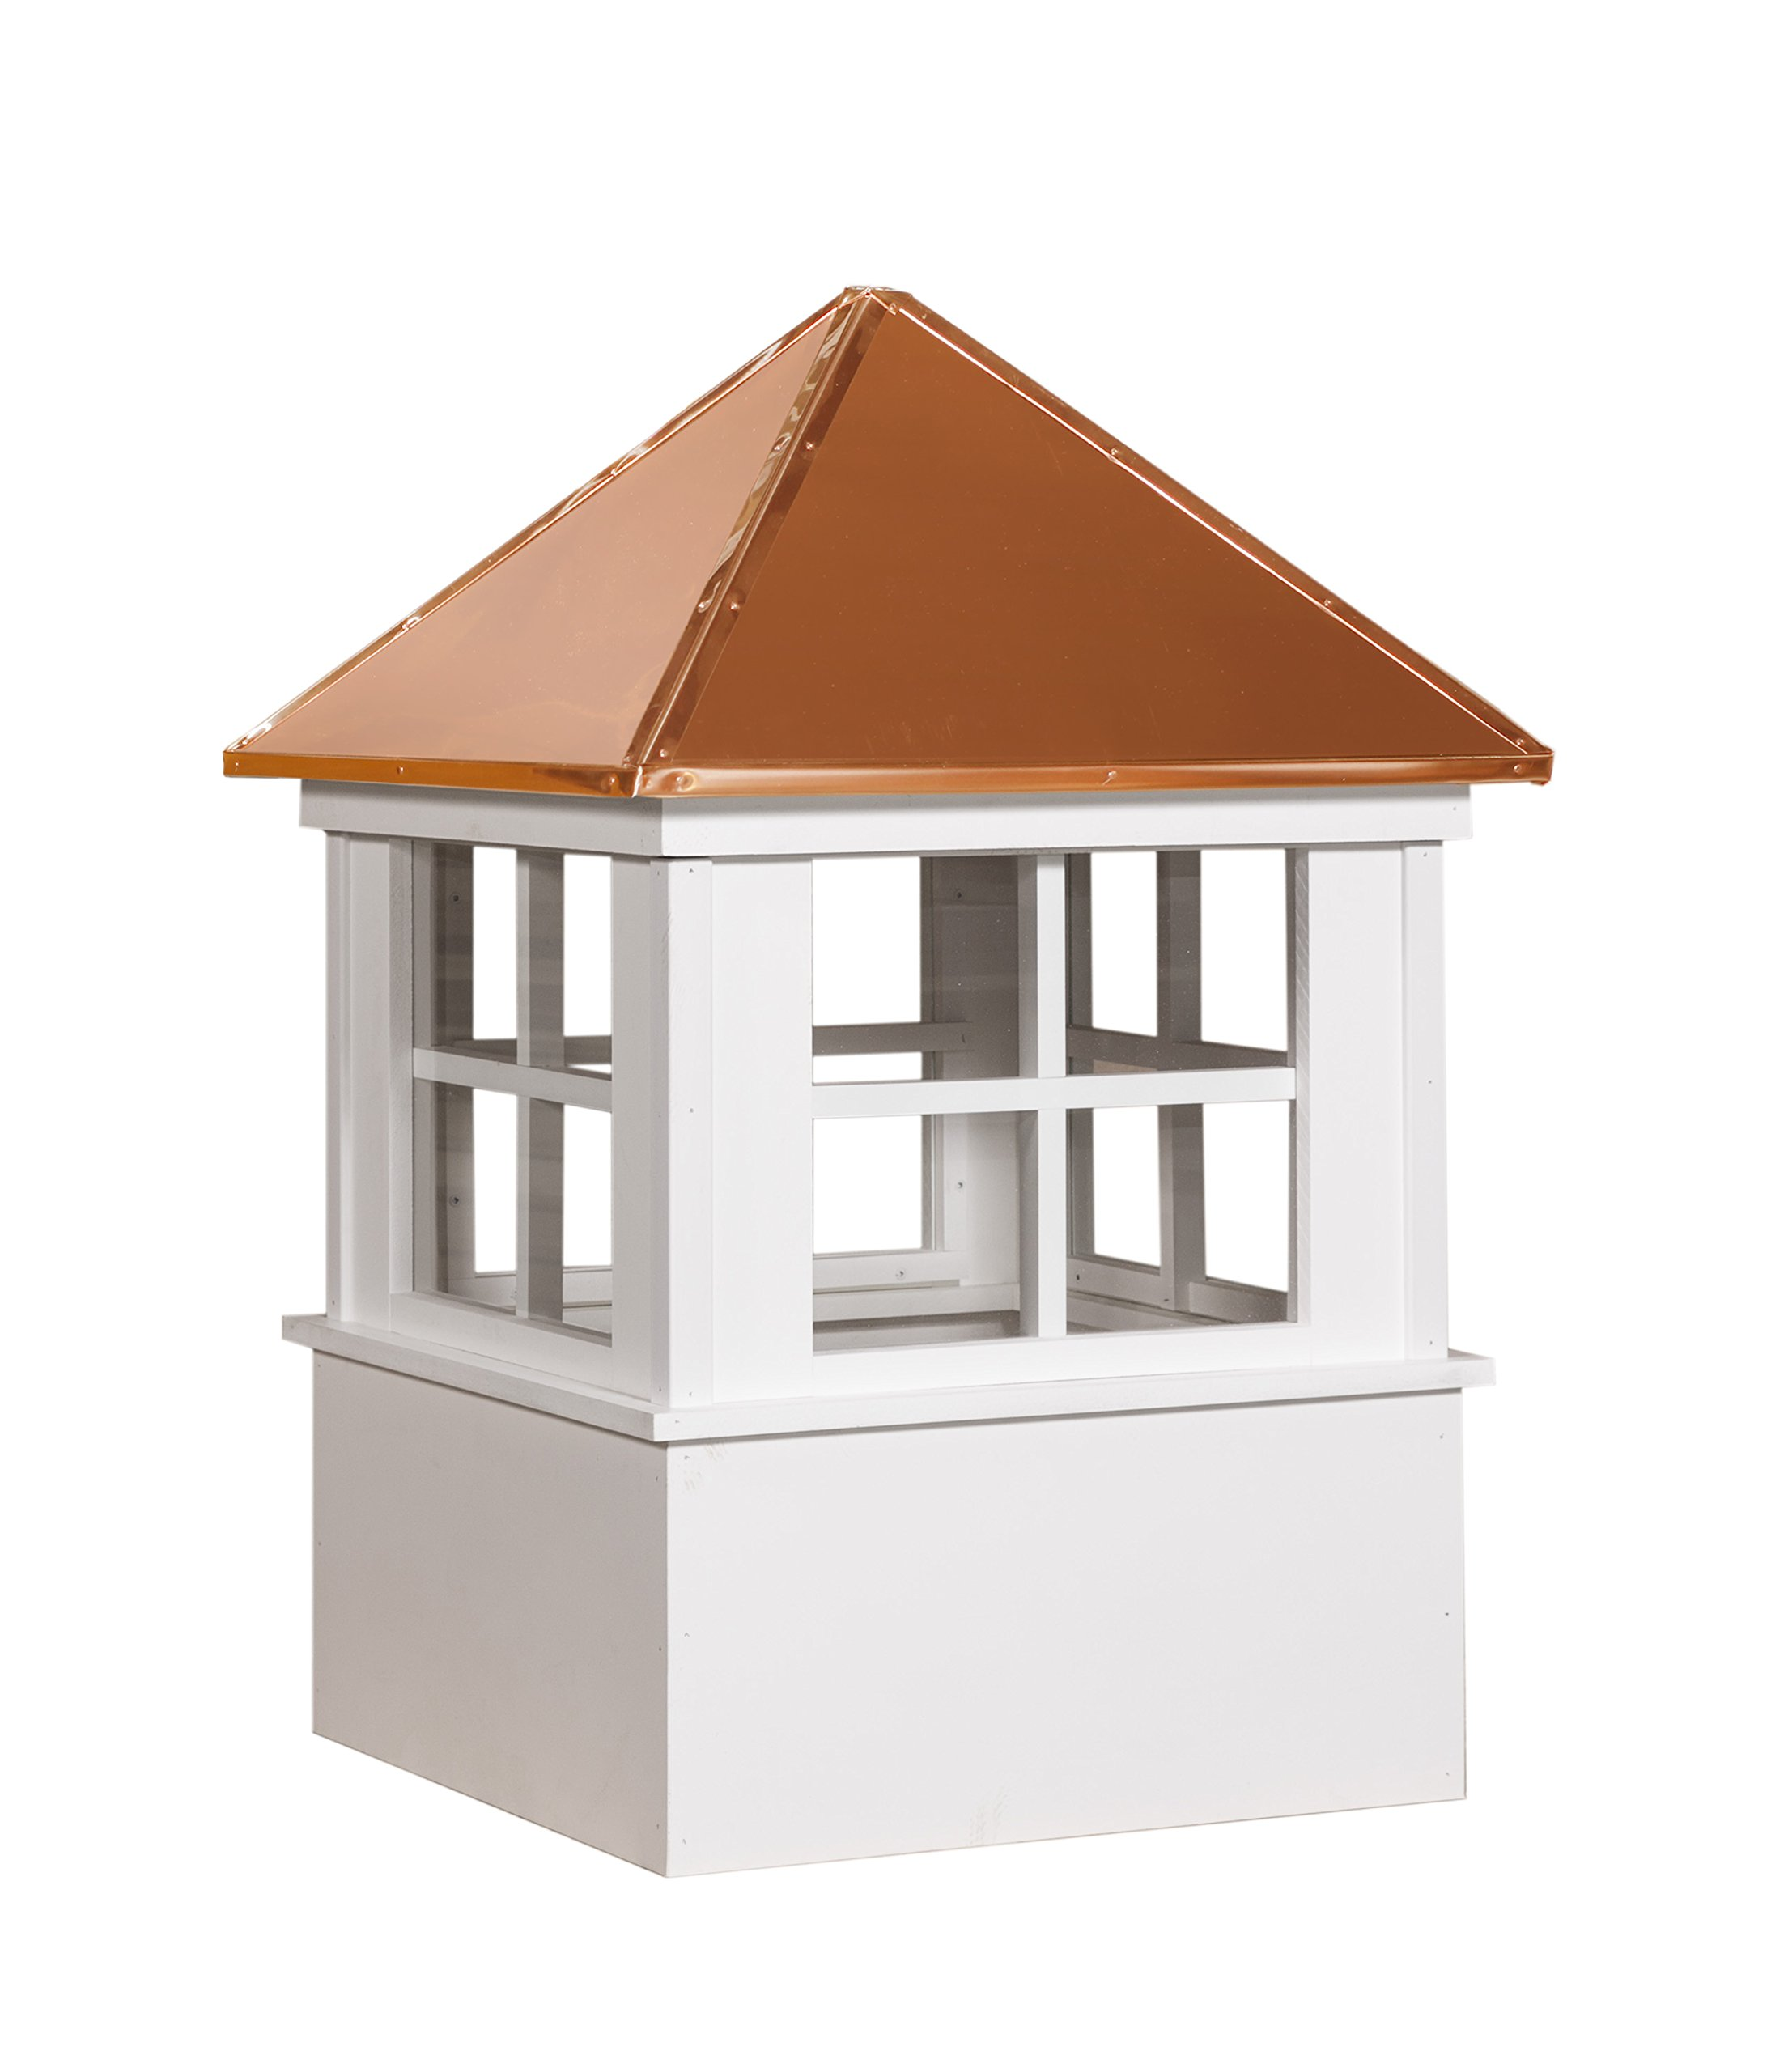 East Coast Weathervanes and Cupolas Vinyl Chester Cupola (Vinyl, 25 in square x 38 in tall) by East Coast Weathervanes and Cupolas (Image #1)